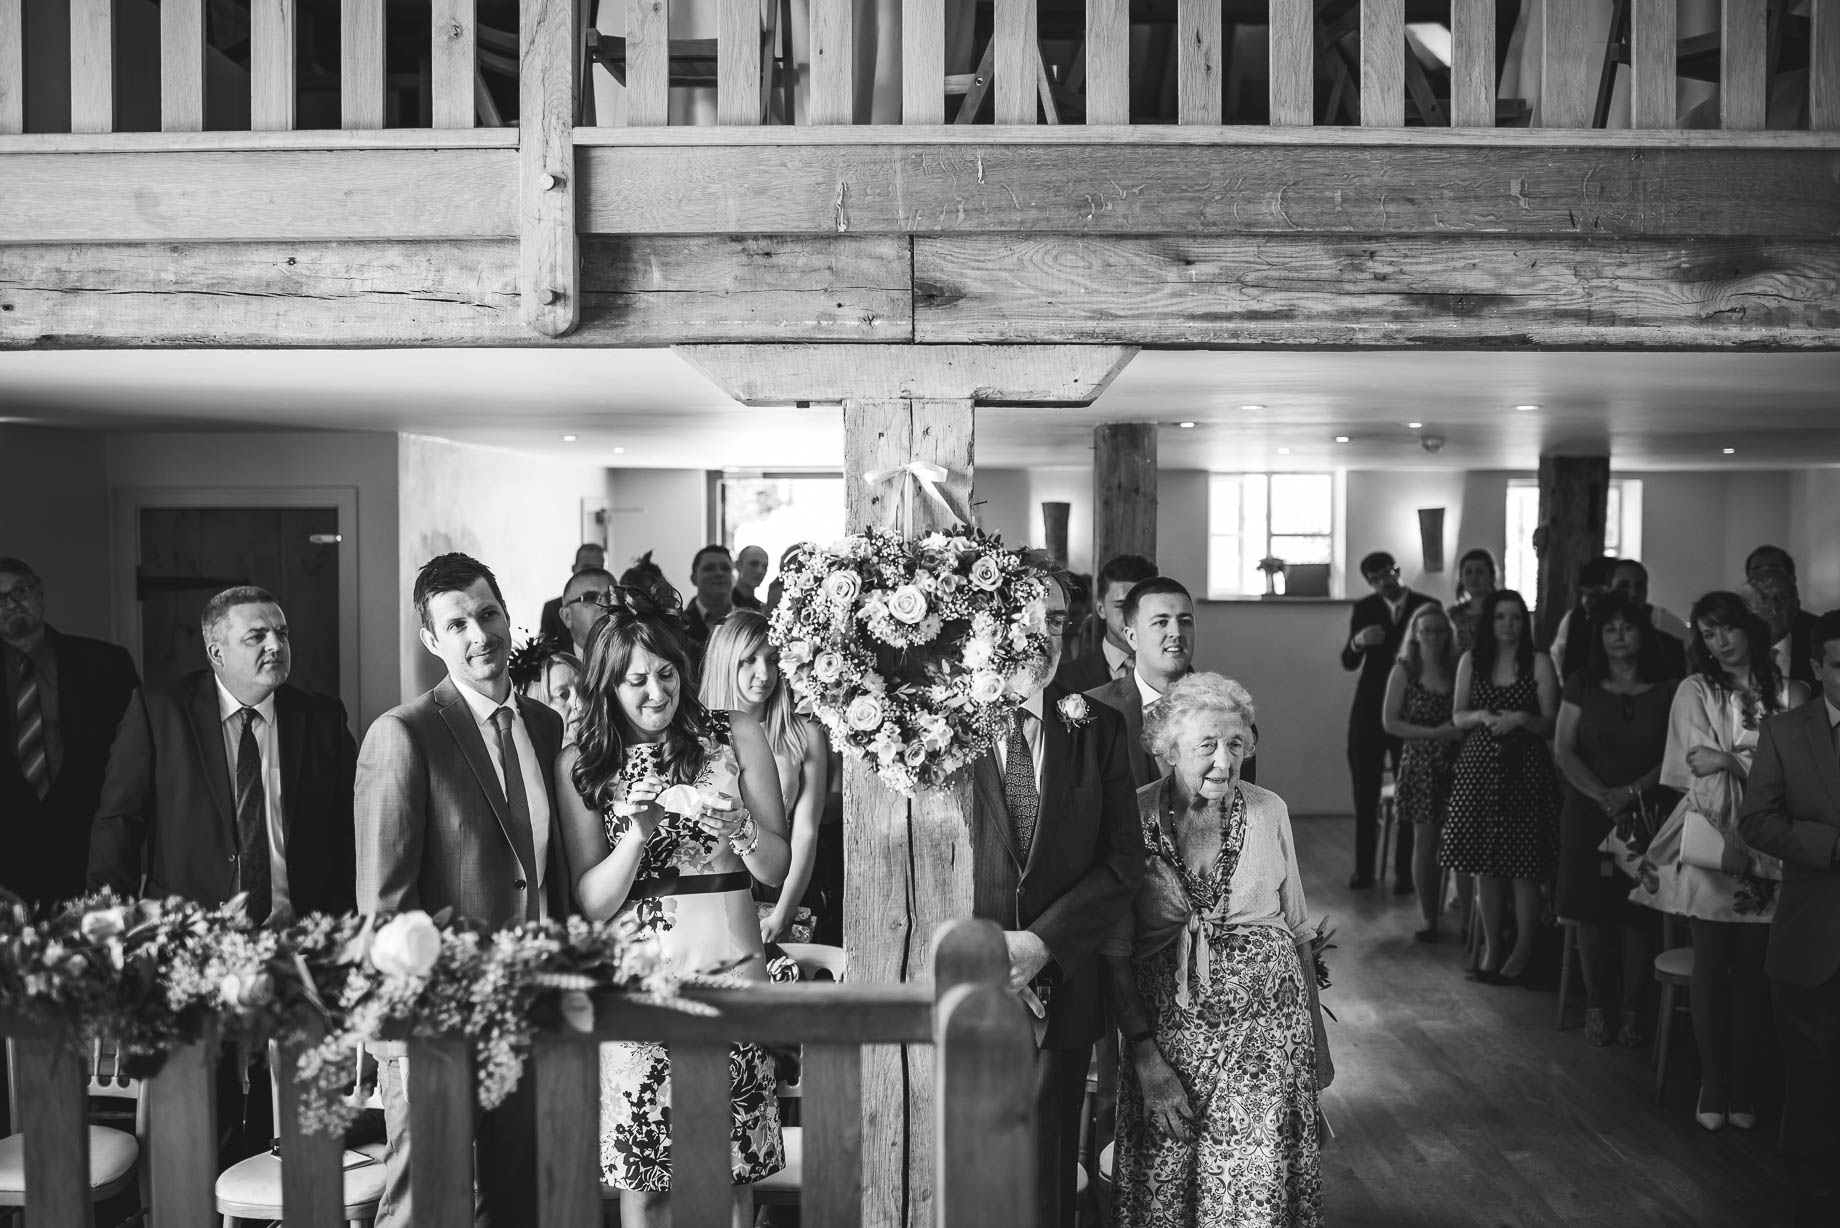 Bury Court Barn wedding photography - Guy Collier - Kirsty and Lewis (55 of 150)